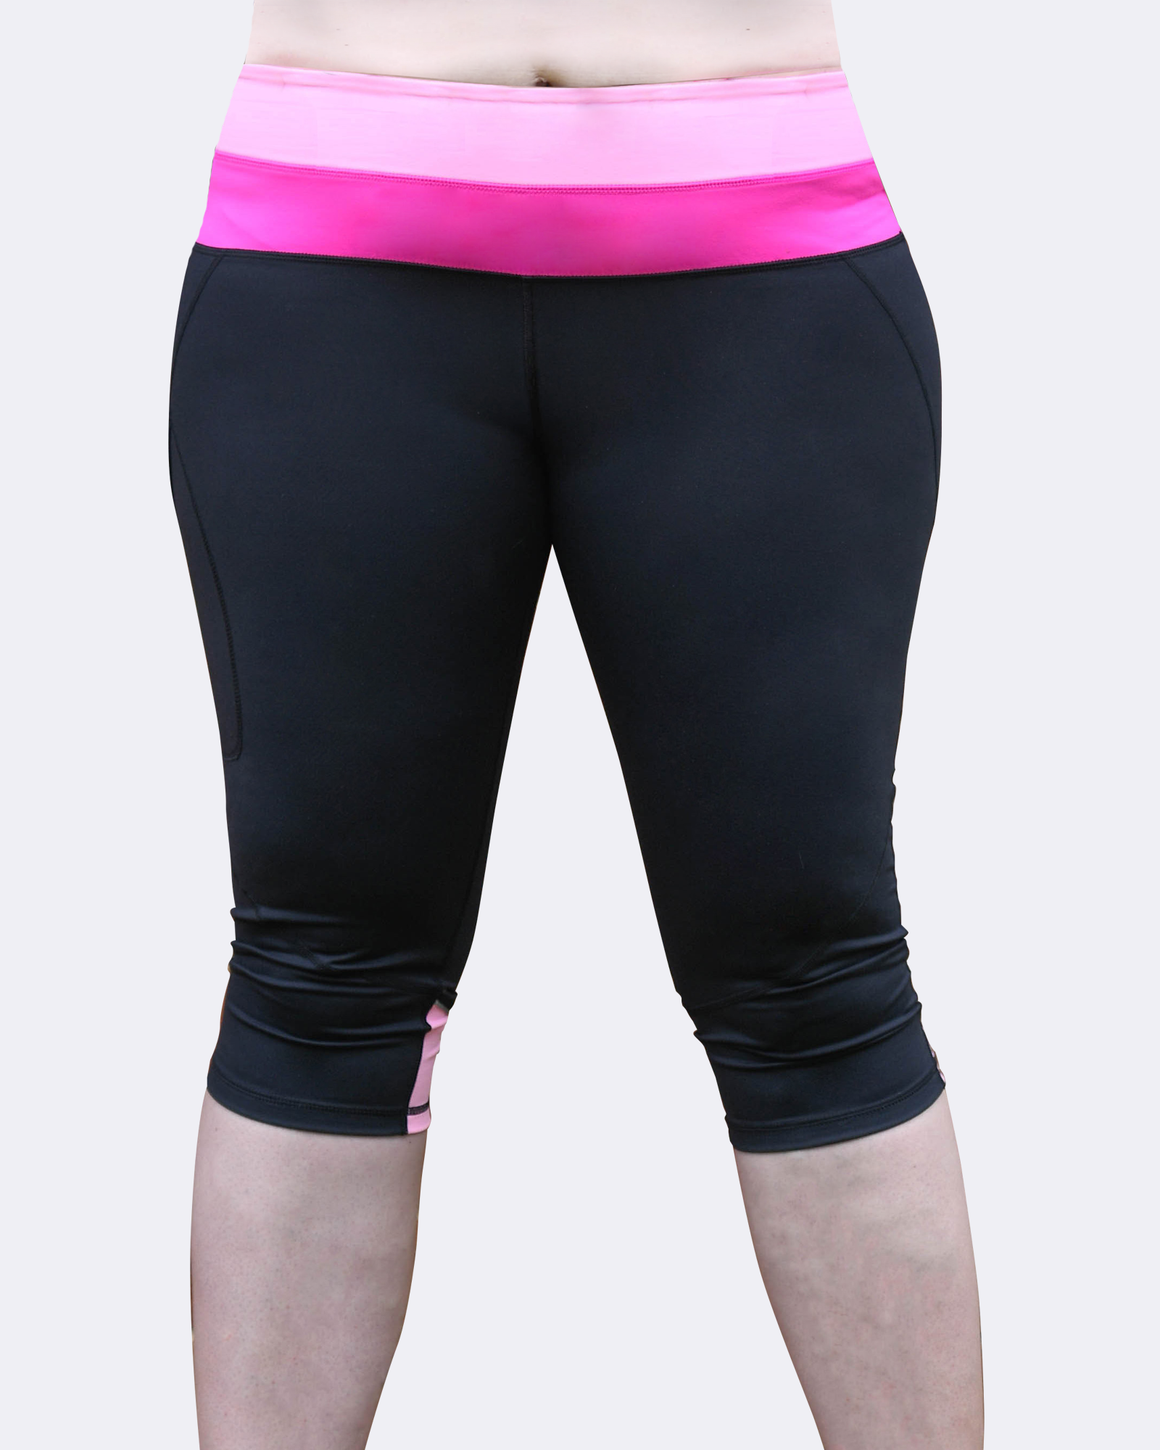 Front View Pink 2 Tone Tights | Mid Rise Plus Size Tights